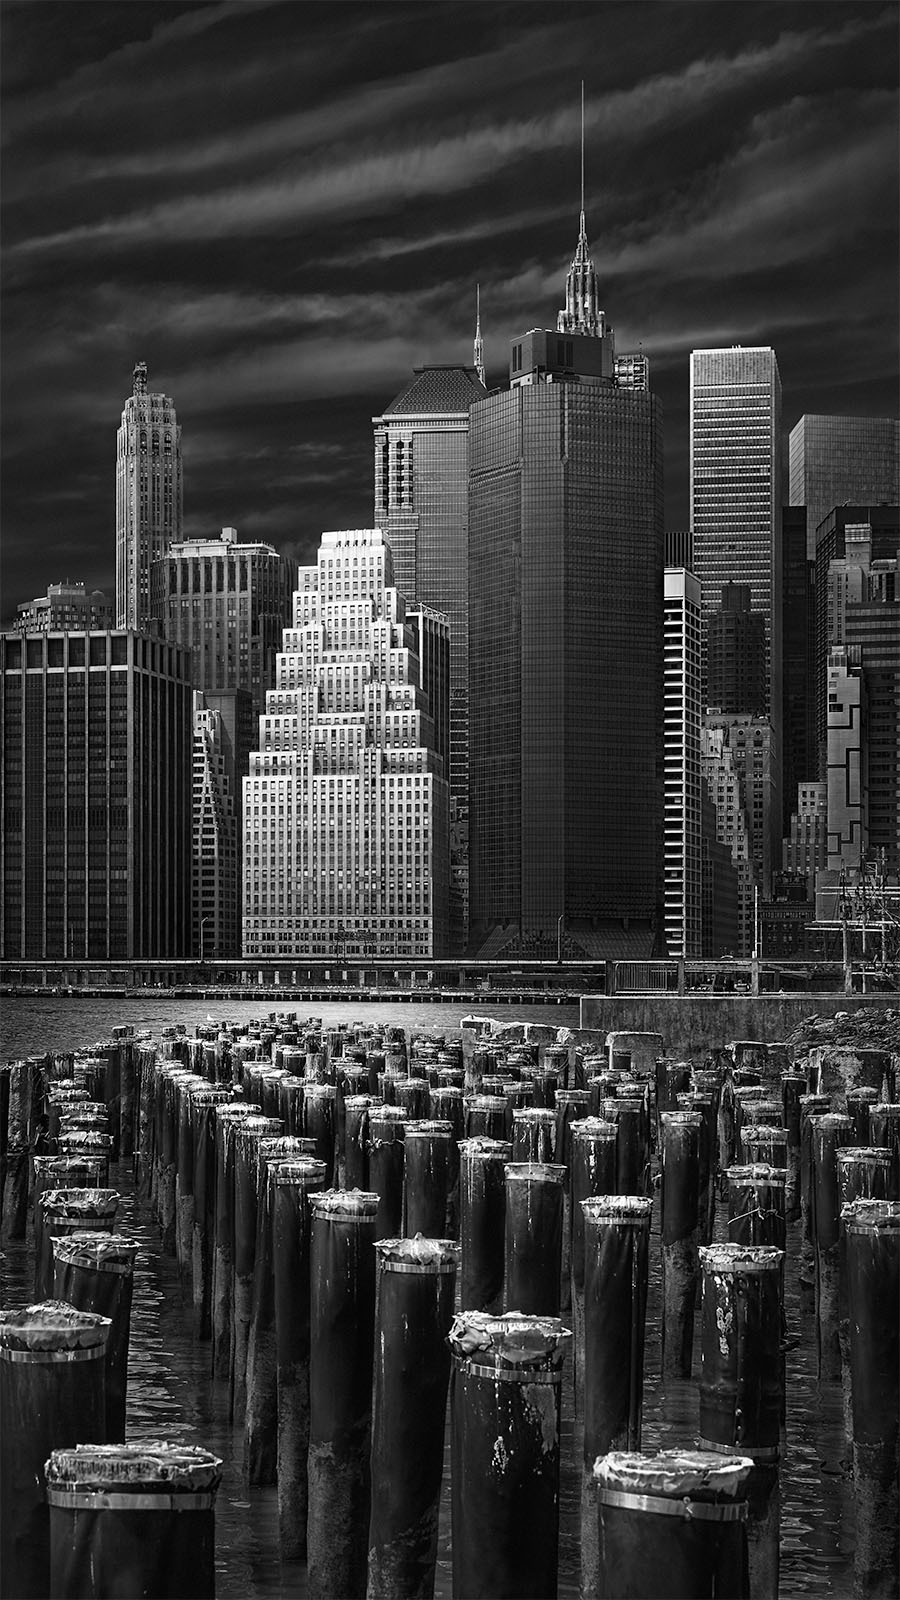 Challenging the status quo in art - All That Jazz - Manhattan Pier New York City ©Julia Anna Gospodarou - Award-Winning Architectural Photography